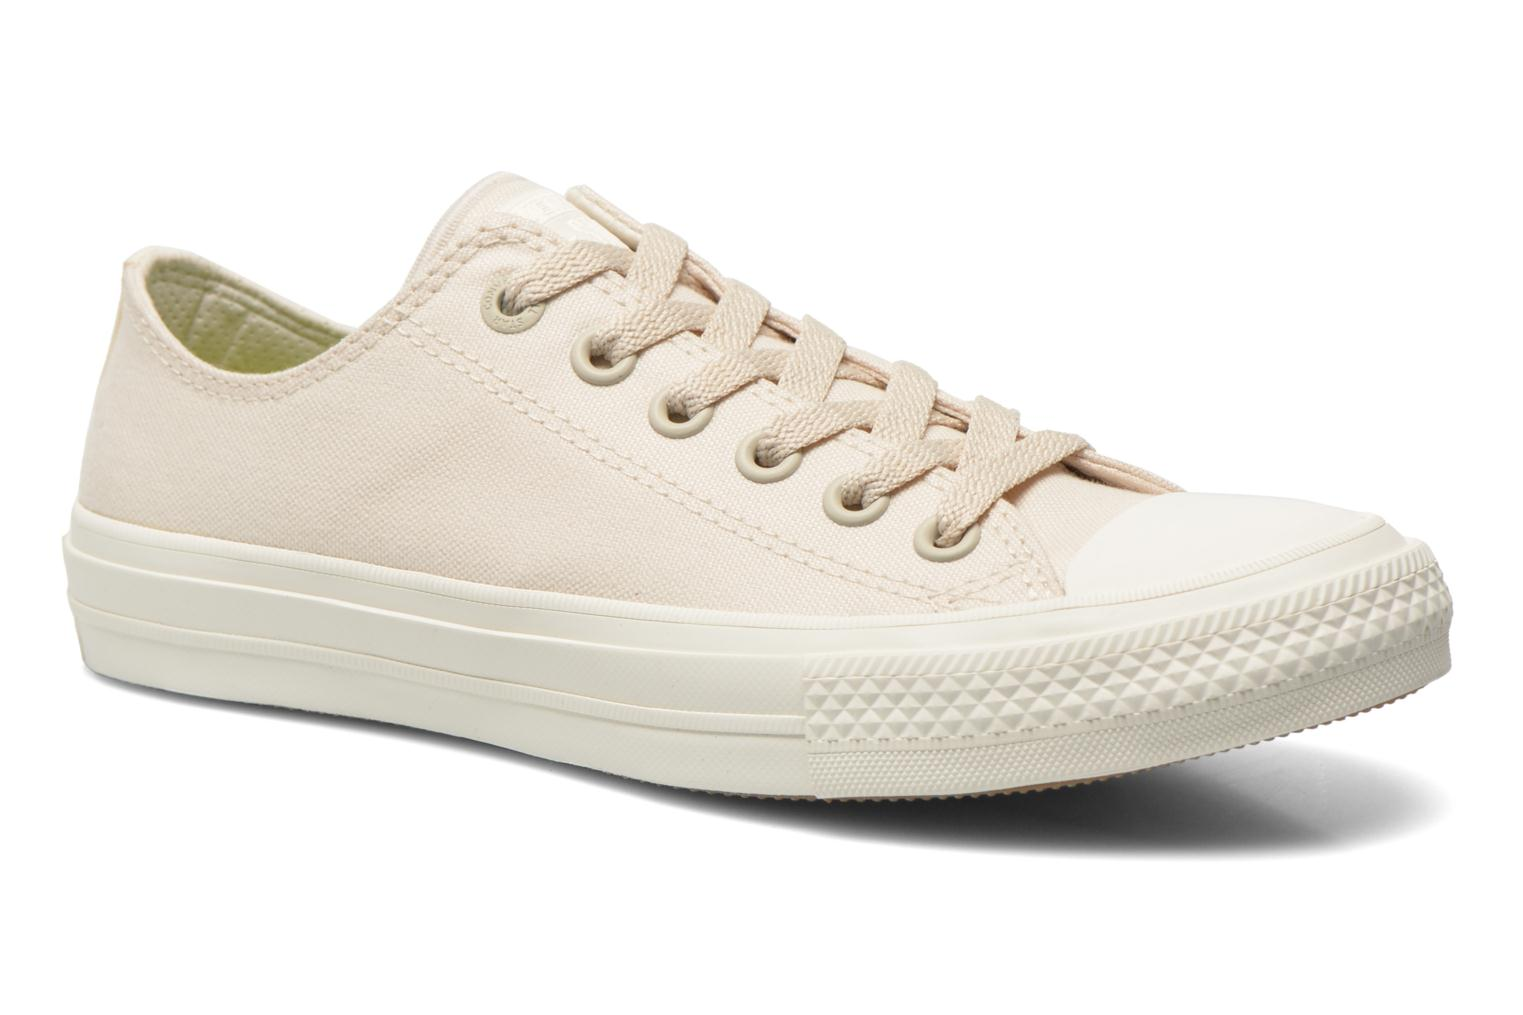 Chuck Taylor All Star II Ox W Parchment/Navy/White